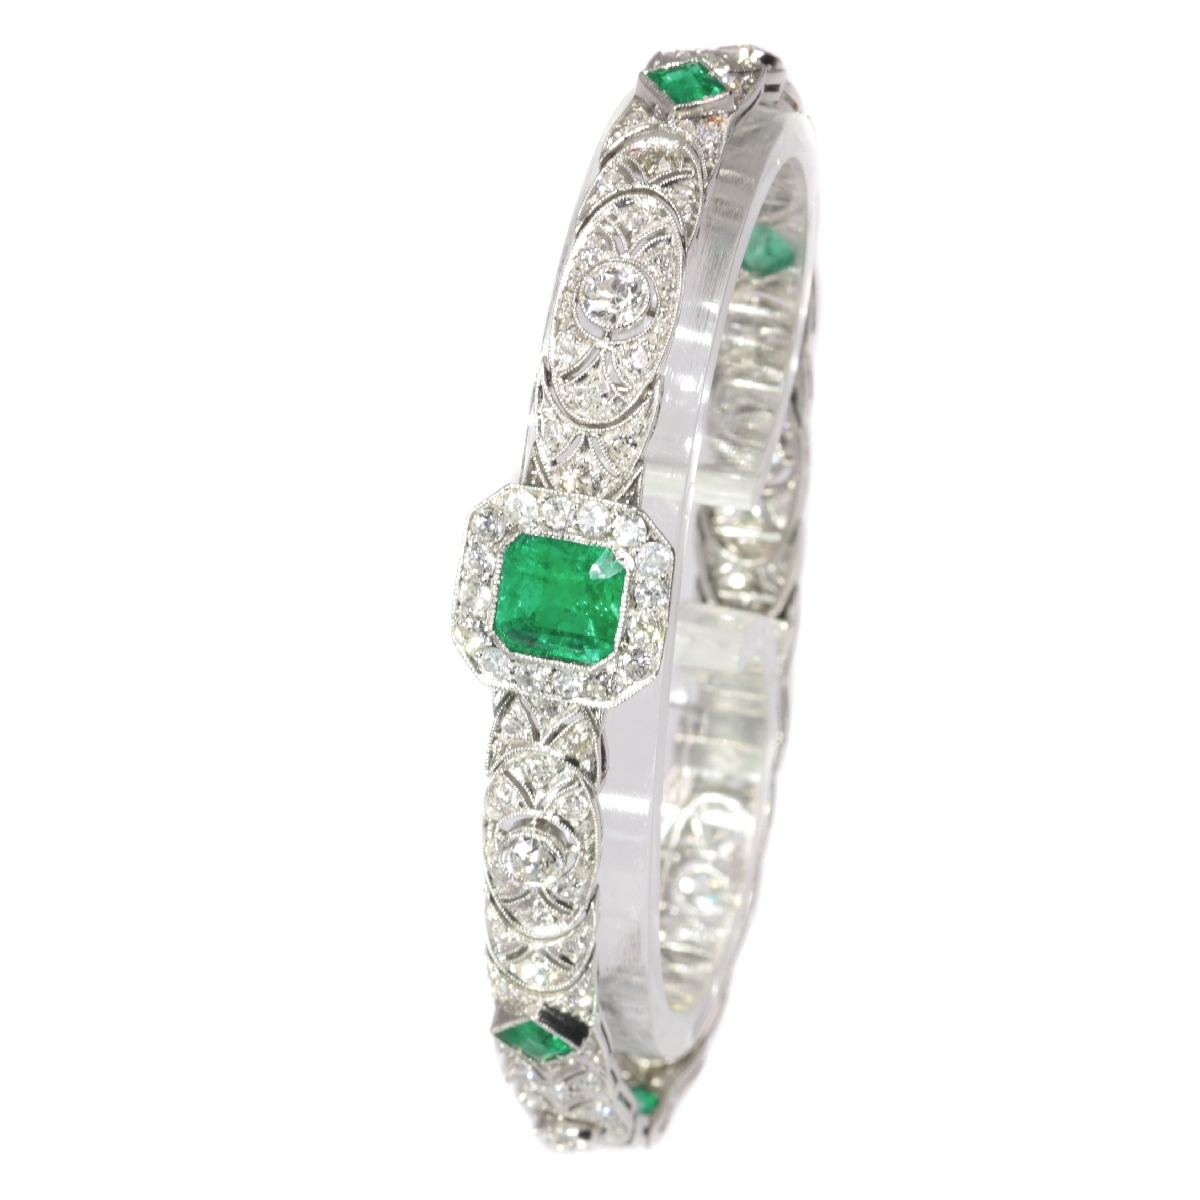 High quality platinum Art Deco bracelet with 140 diamonds and top emeralds